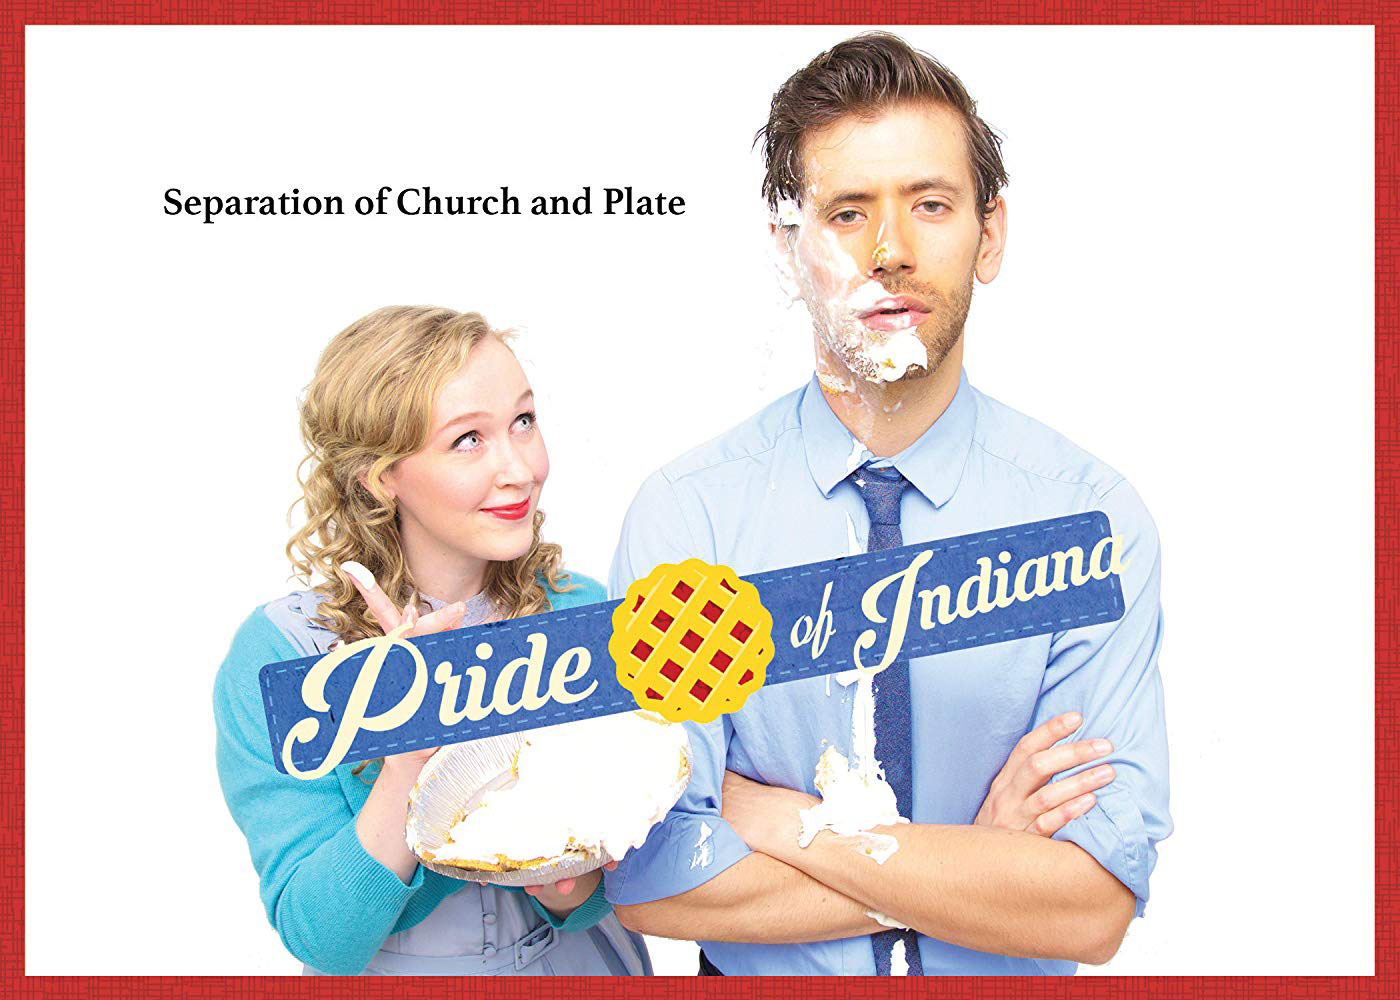 Cover art for Pride of Indiana